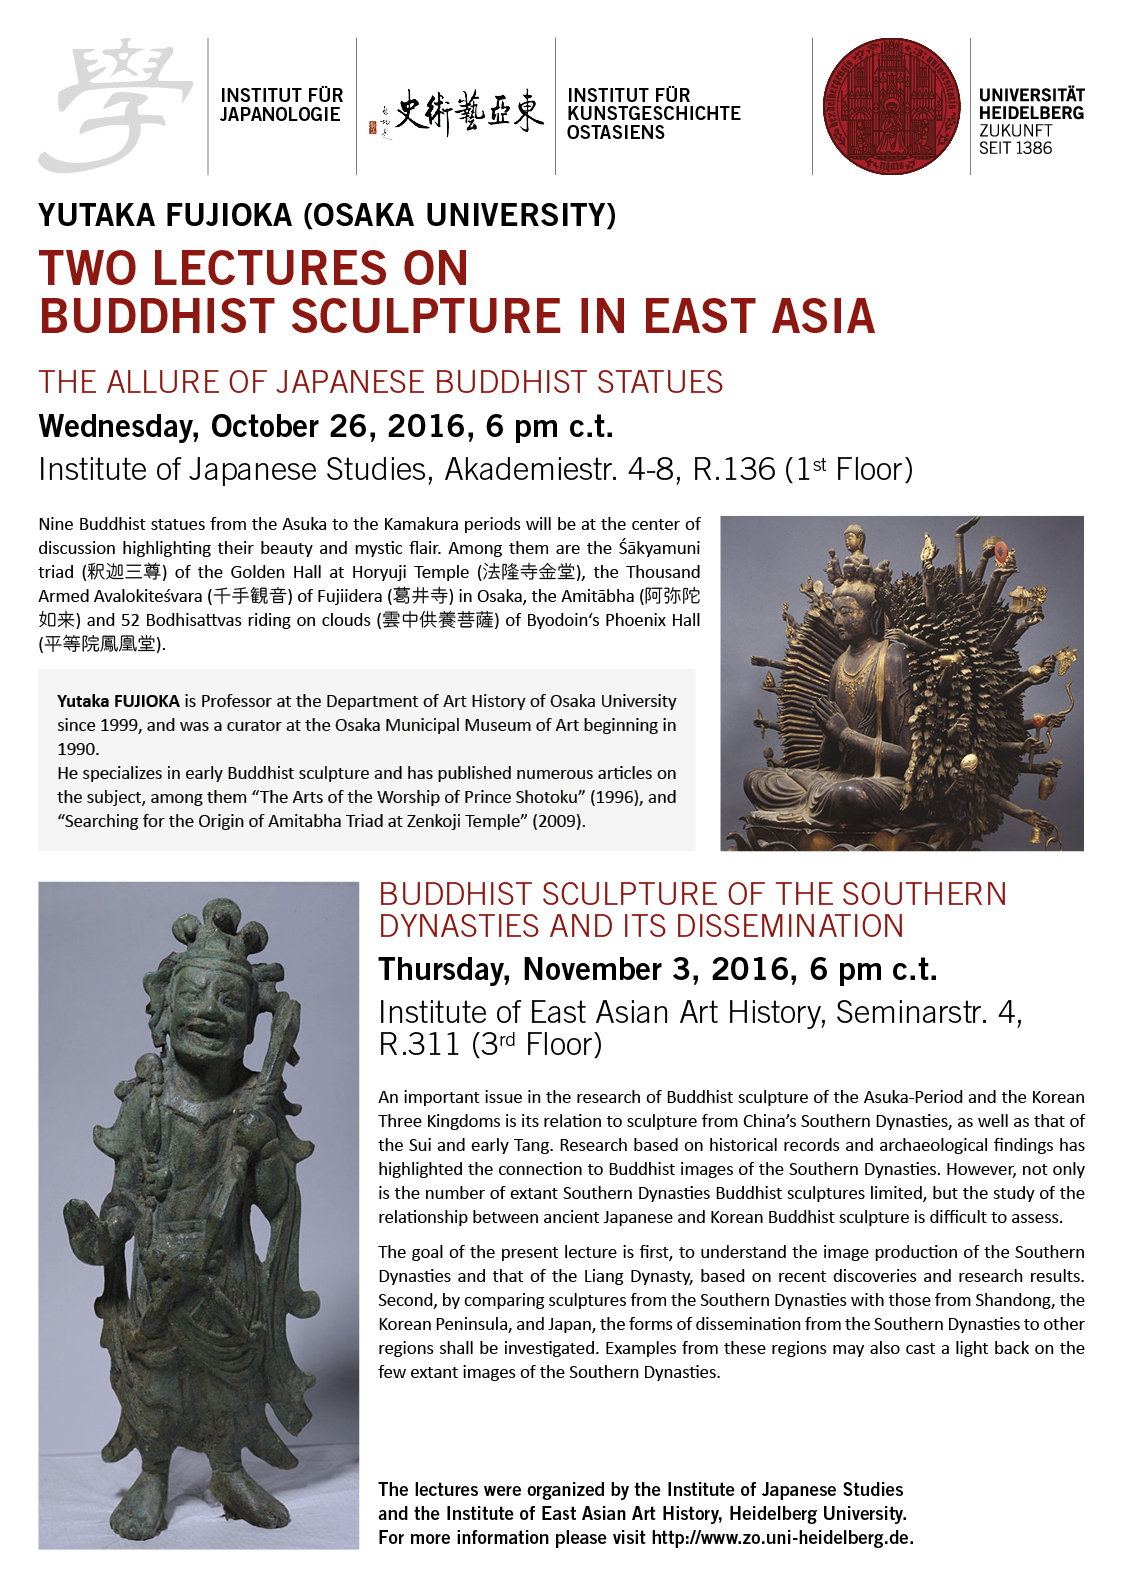 3. November 2016 | Yutaka Fujioka: Buddhist Sculpture of the Southern Dynasties and its Dissemination